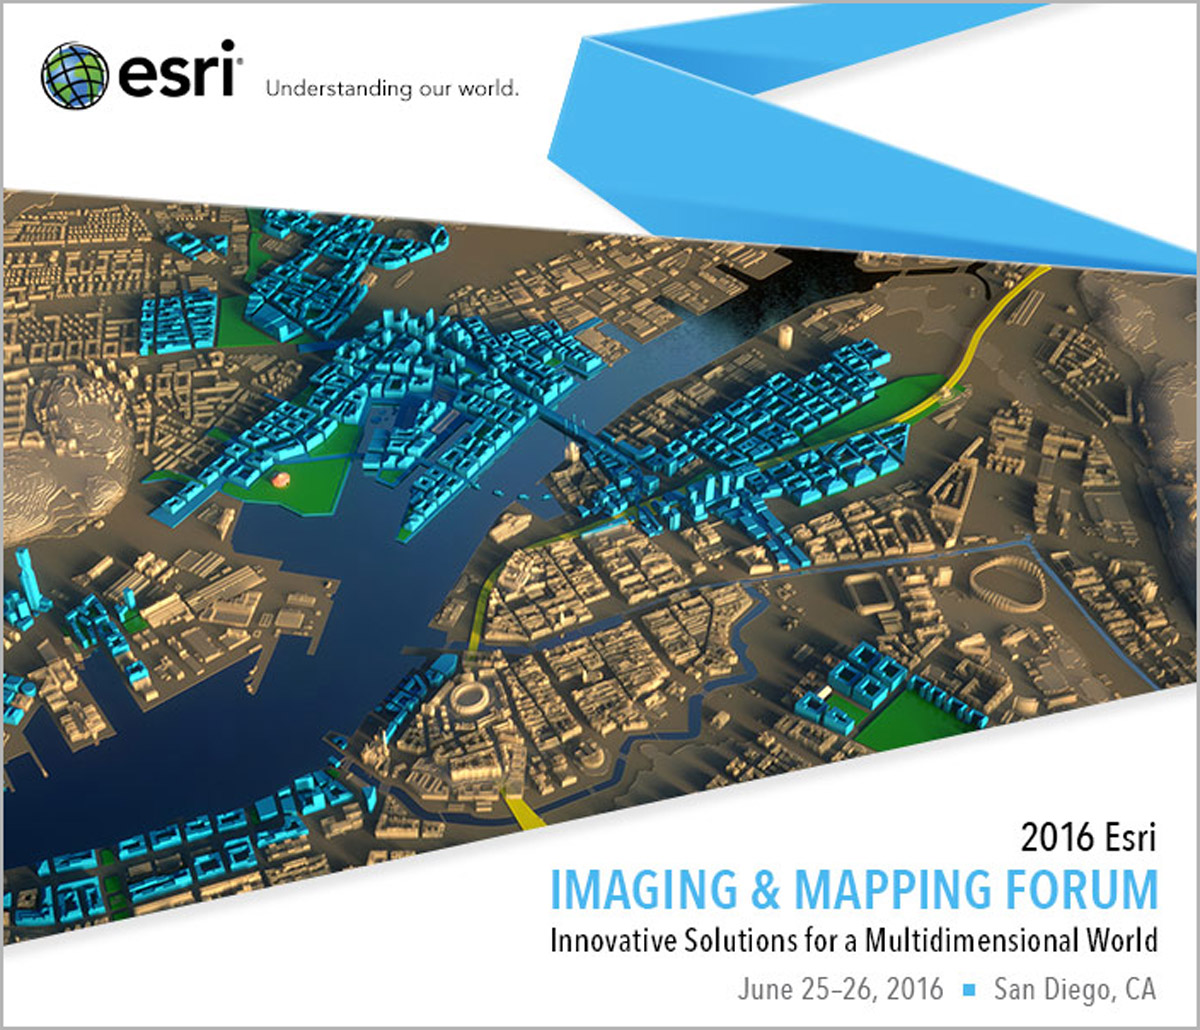 See the future of drone mapping platforms at Esri's Imaging and Mapping Forum.